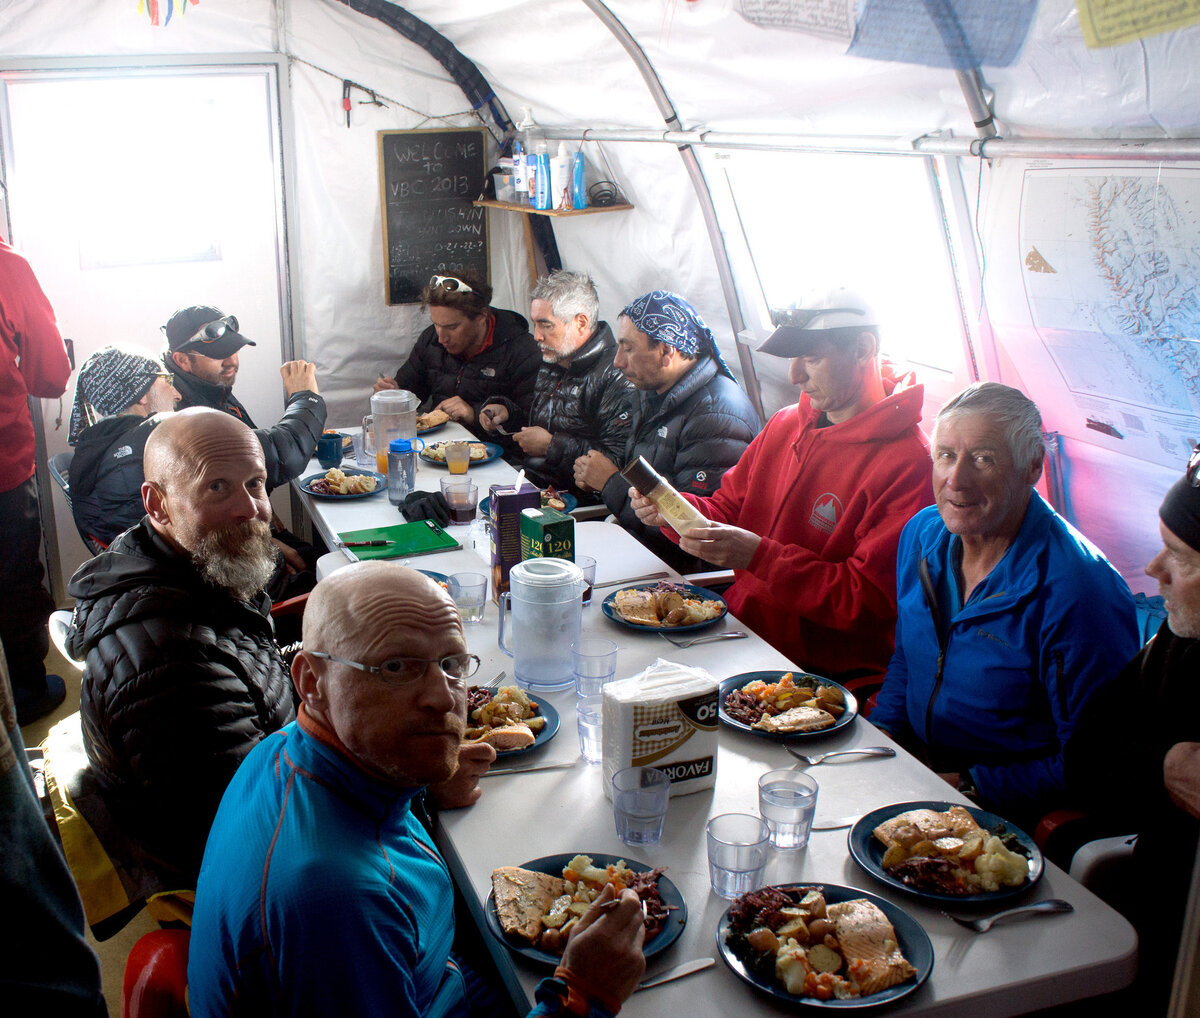 ALE guests enjoy a salmon dinner with roast potatoes